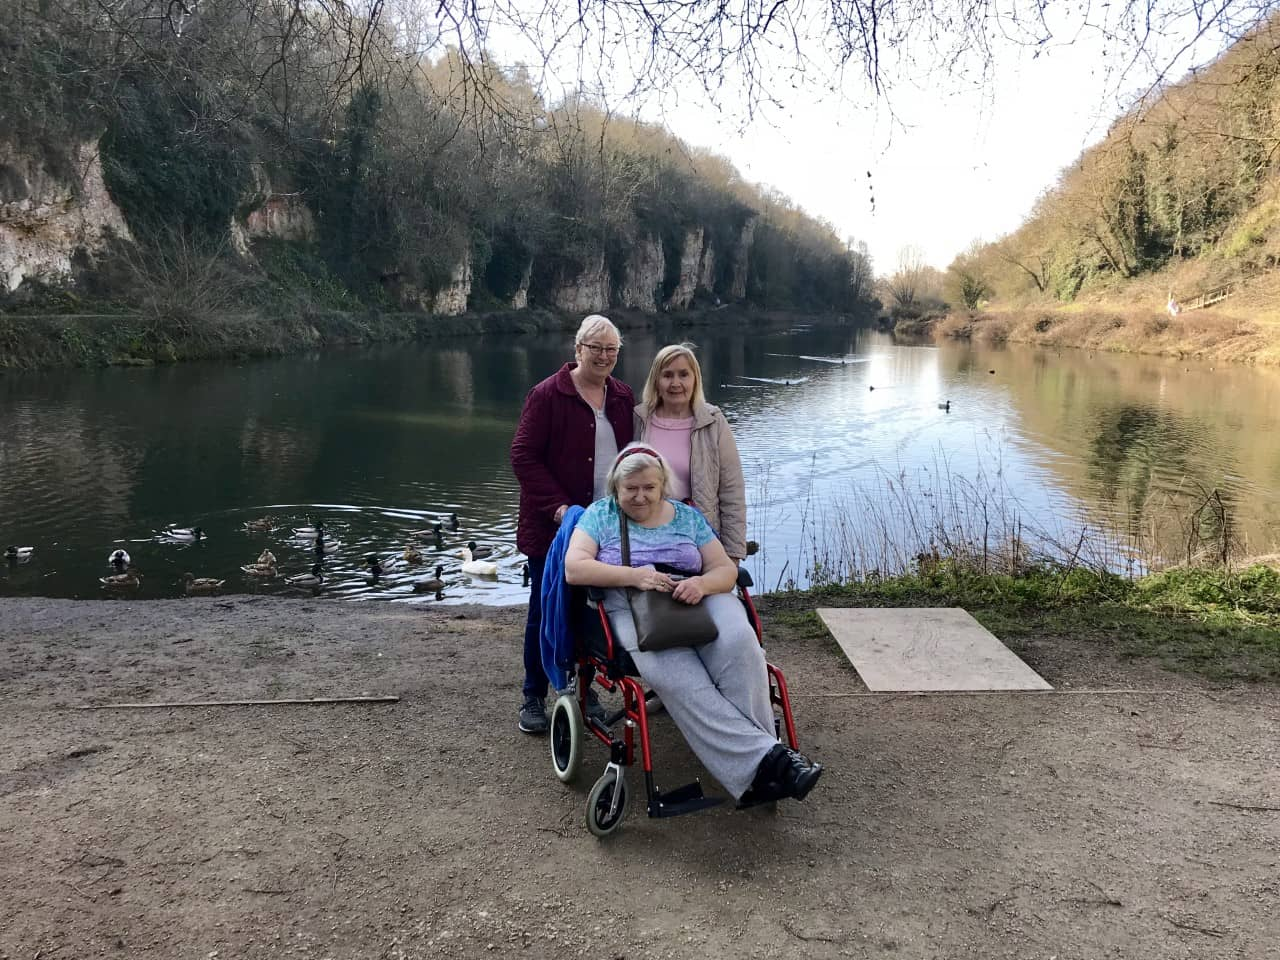 Residents at Creswell Crags